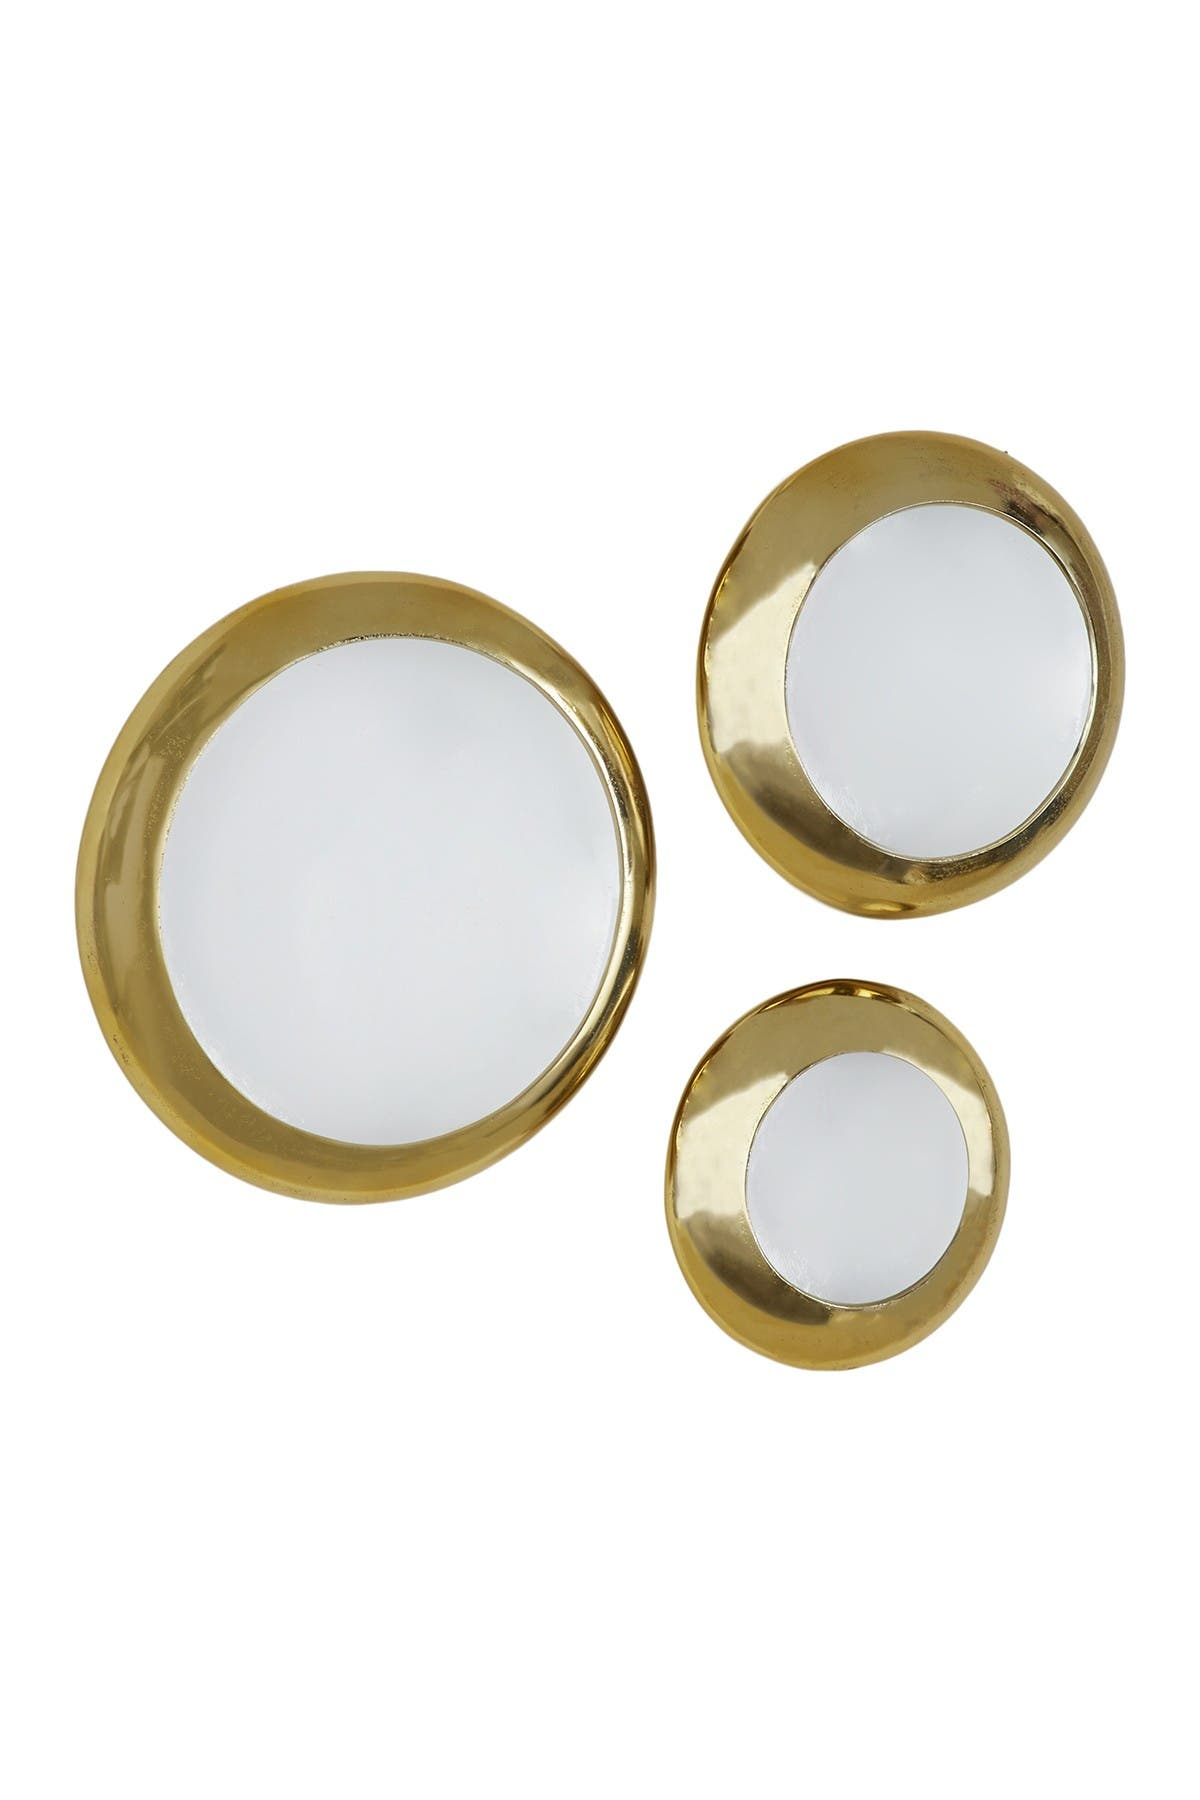 Venus Williams Collection Metallic Gold And White Round Metal Plate Wall Decor Set Of 3 19 15 12 Nordstrom Rack